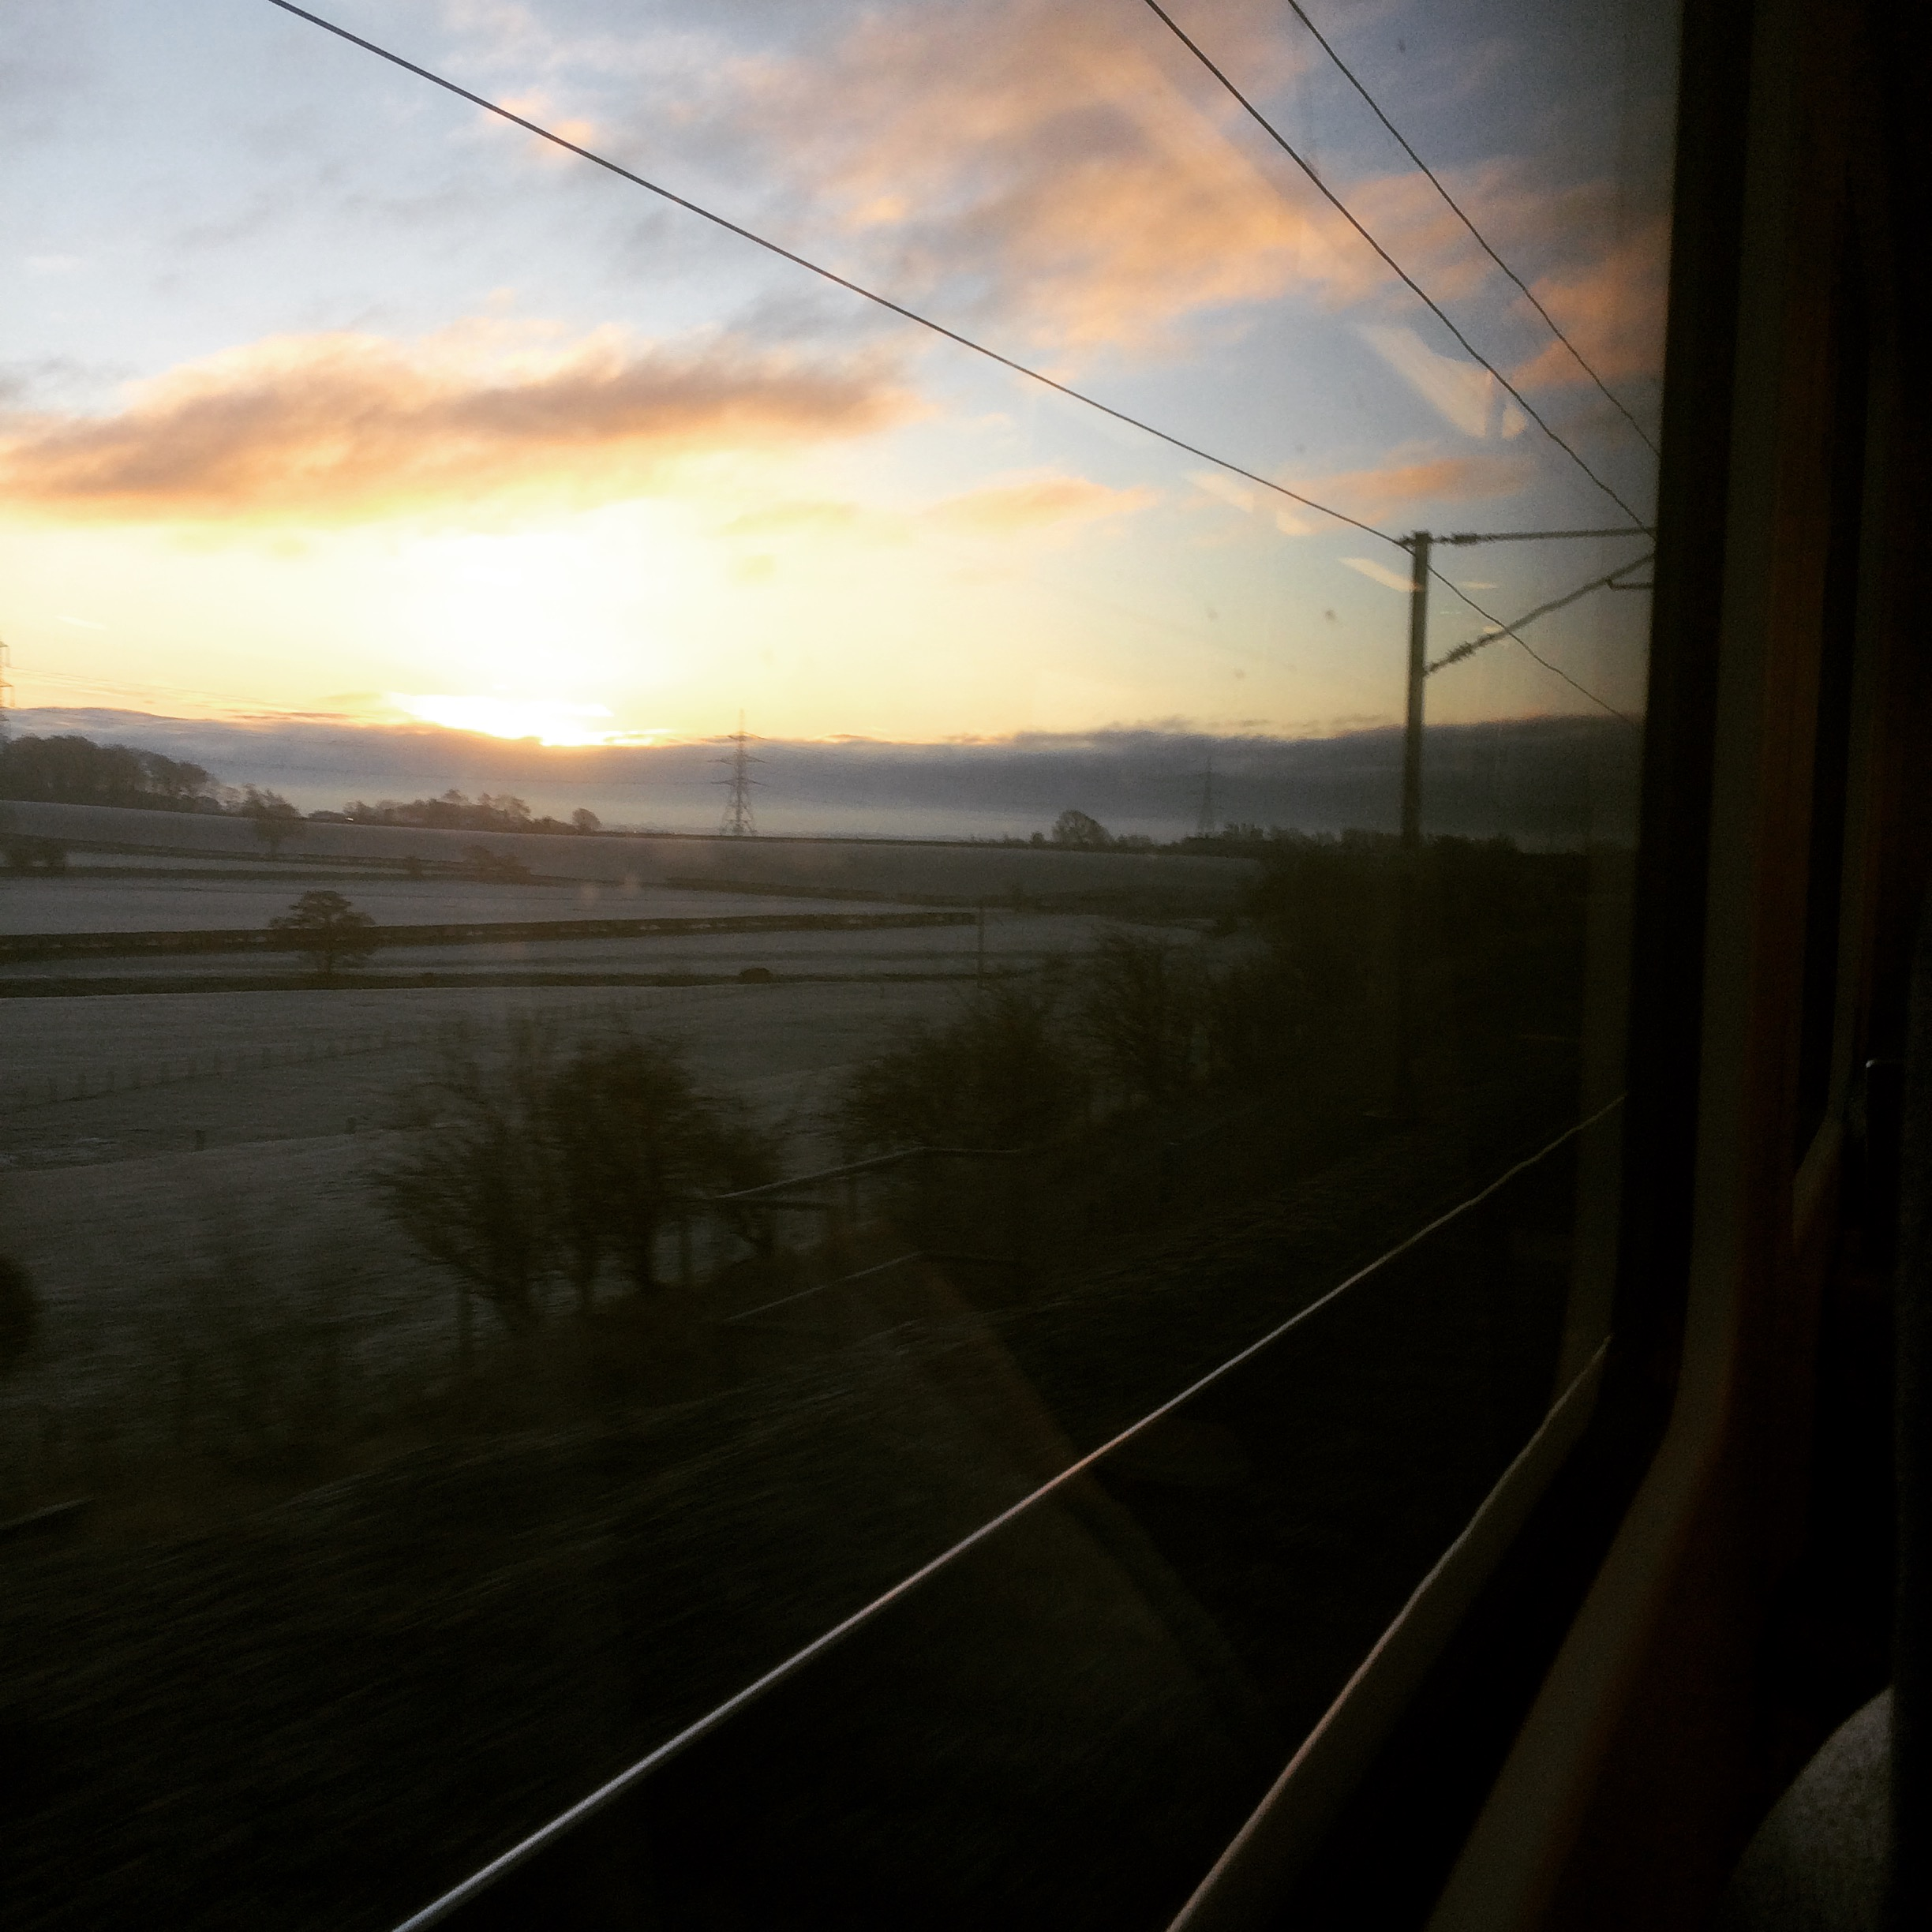 View from the train.